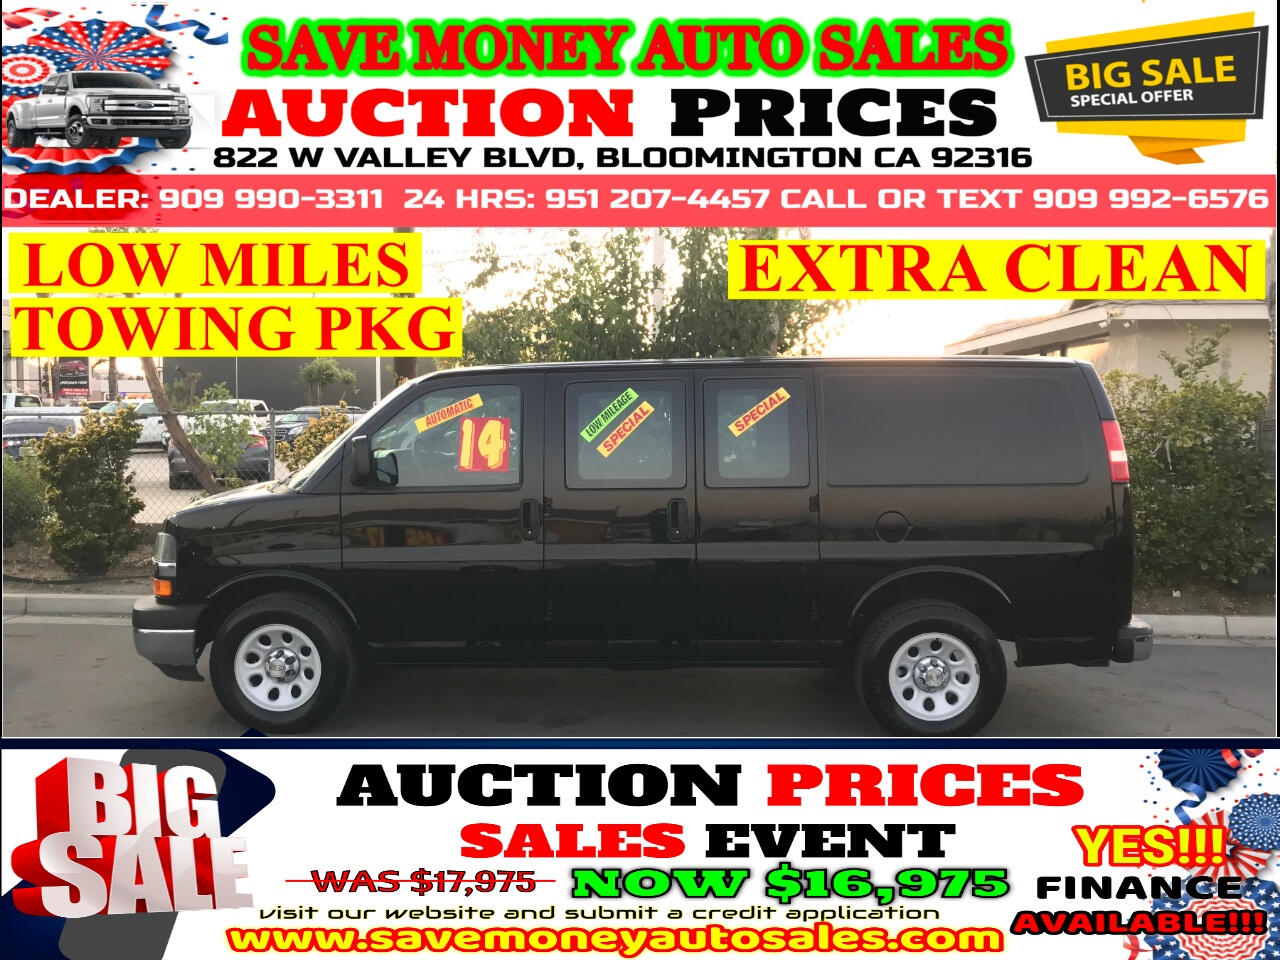 2014 Chevrolet Express 1500 CARGO> 48K LOW MILES> EXTRA CLEAN>AUTOMATIC